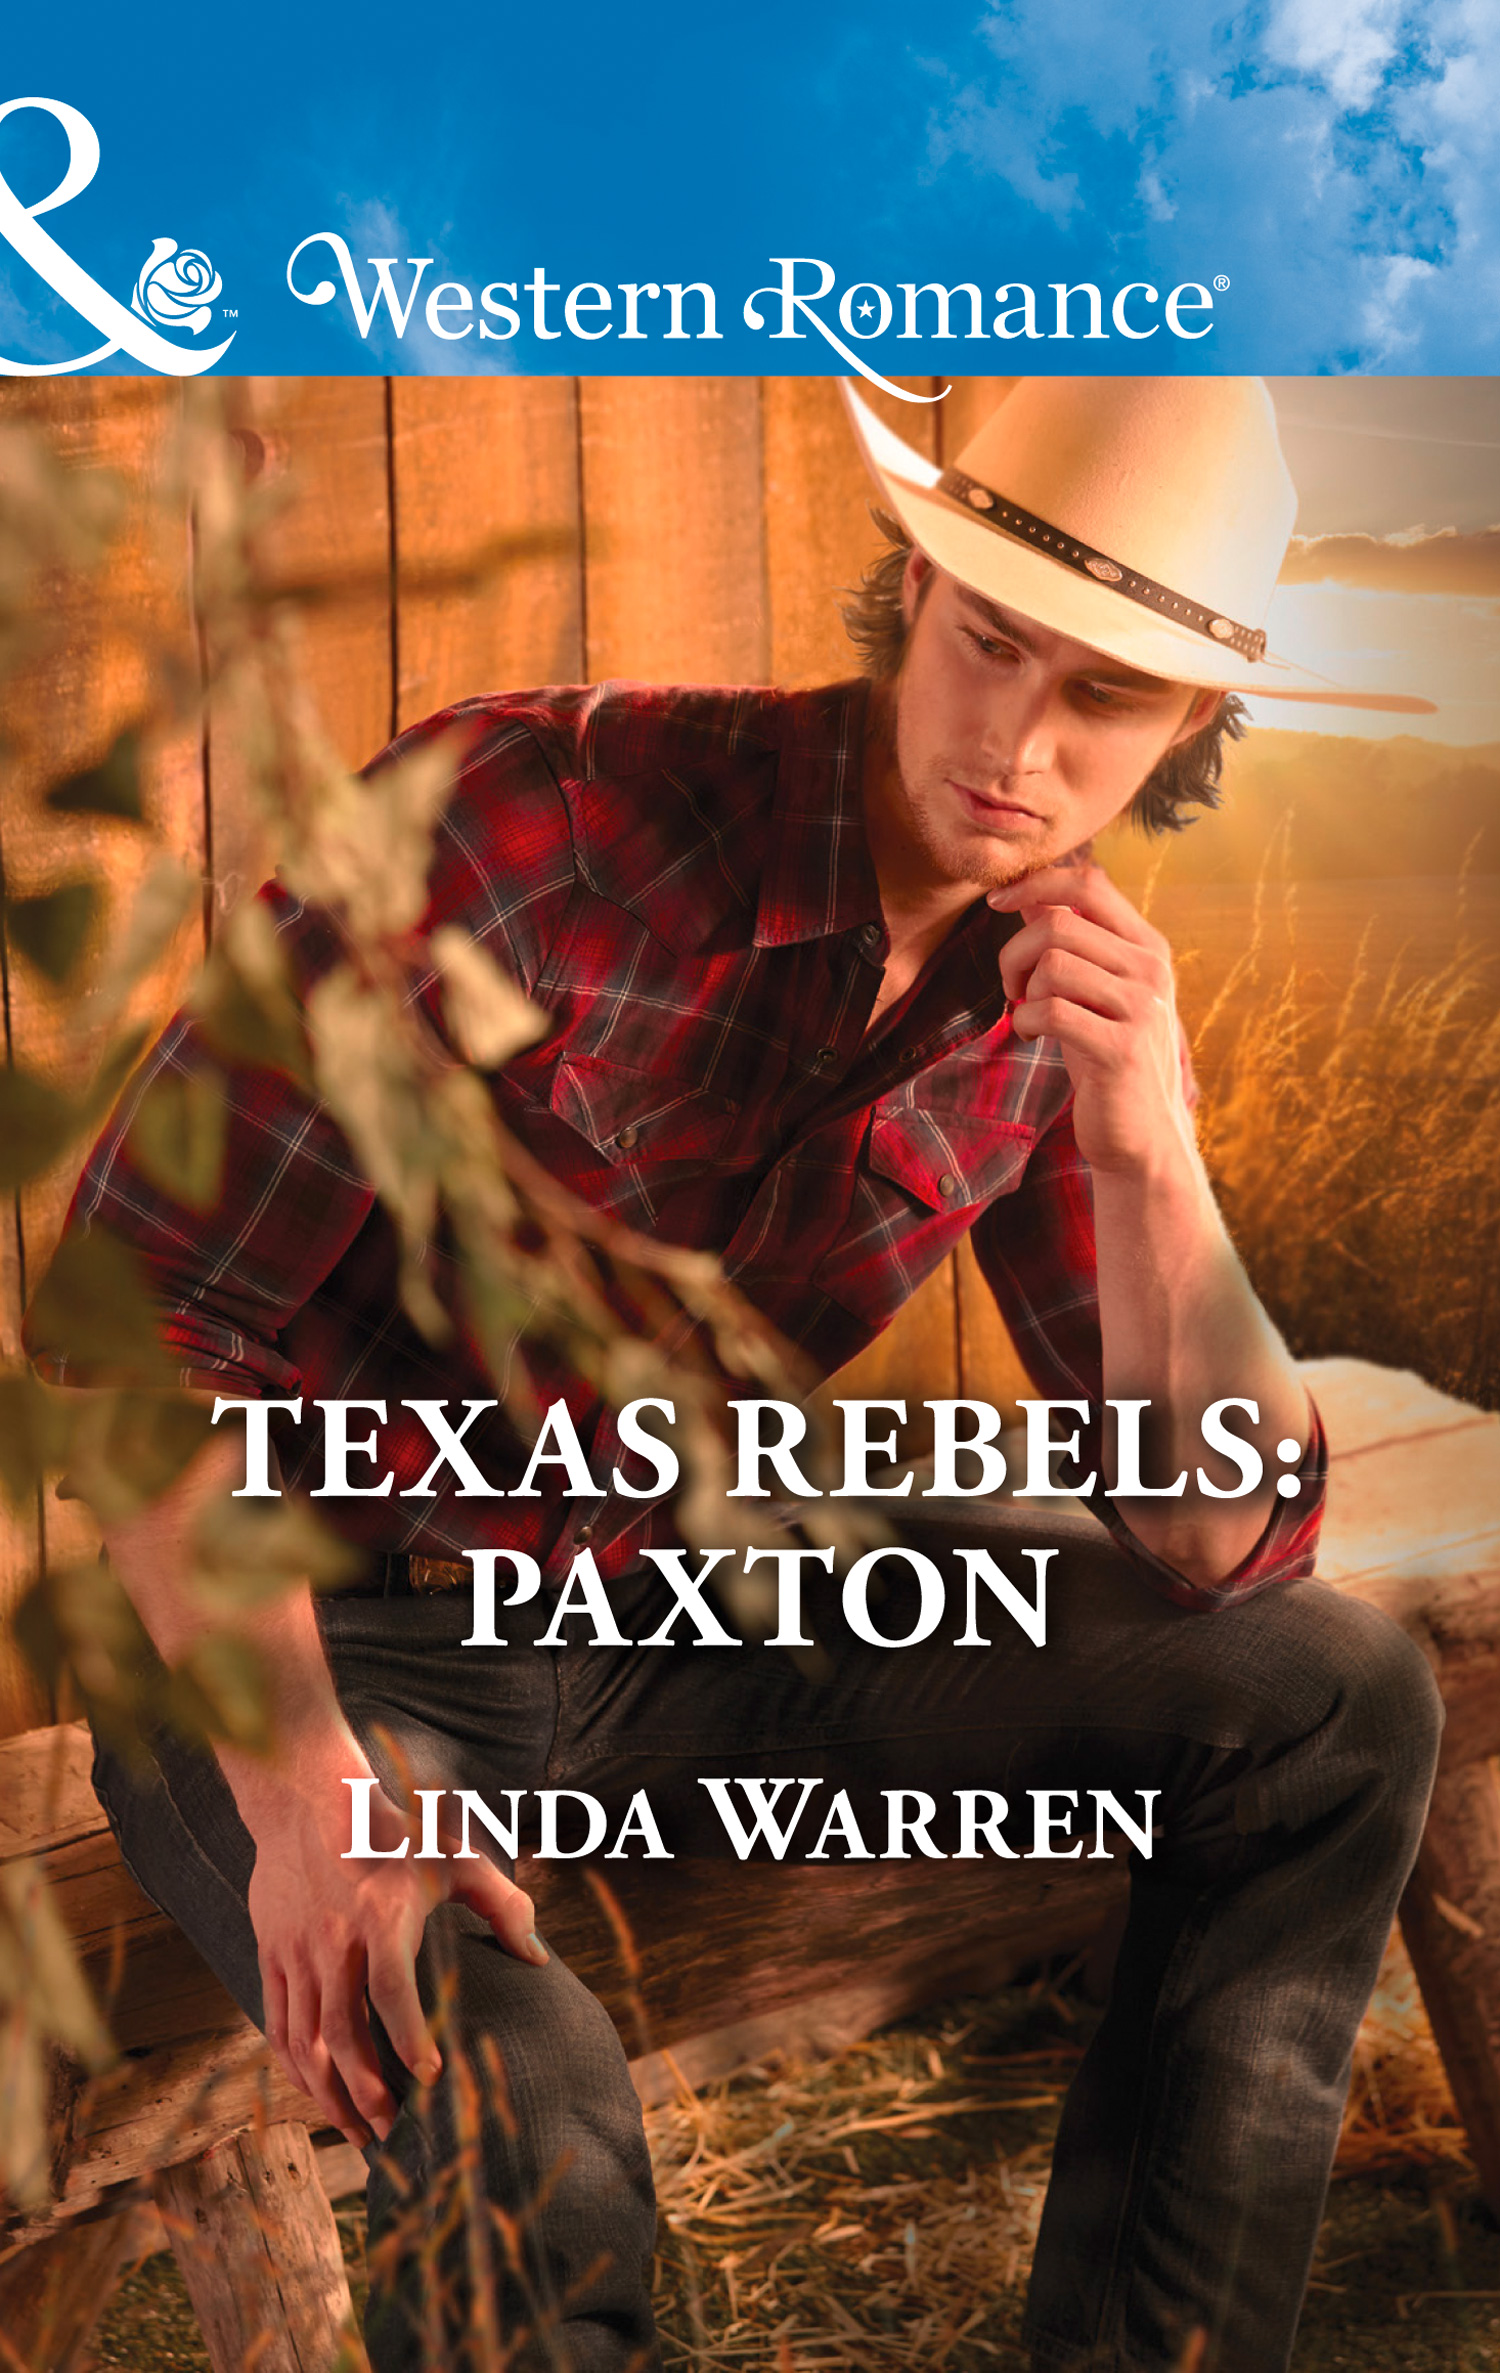 Texas Rebels: Paxton